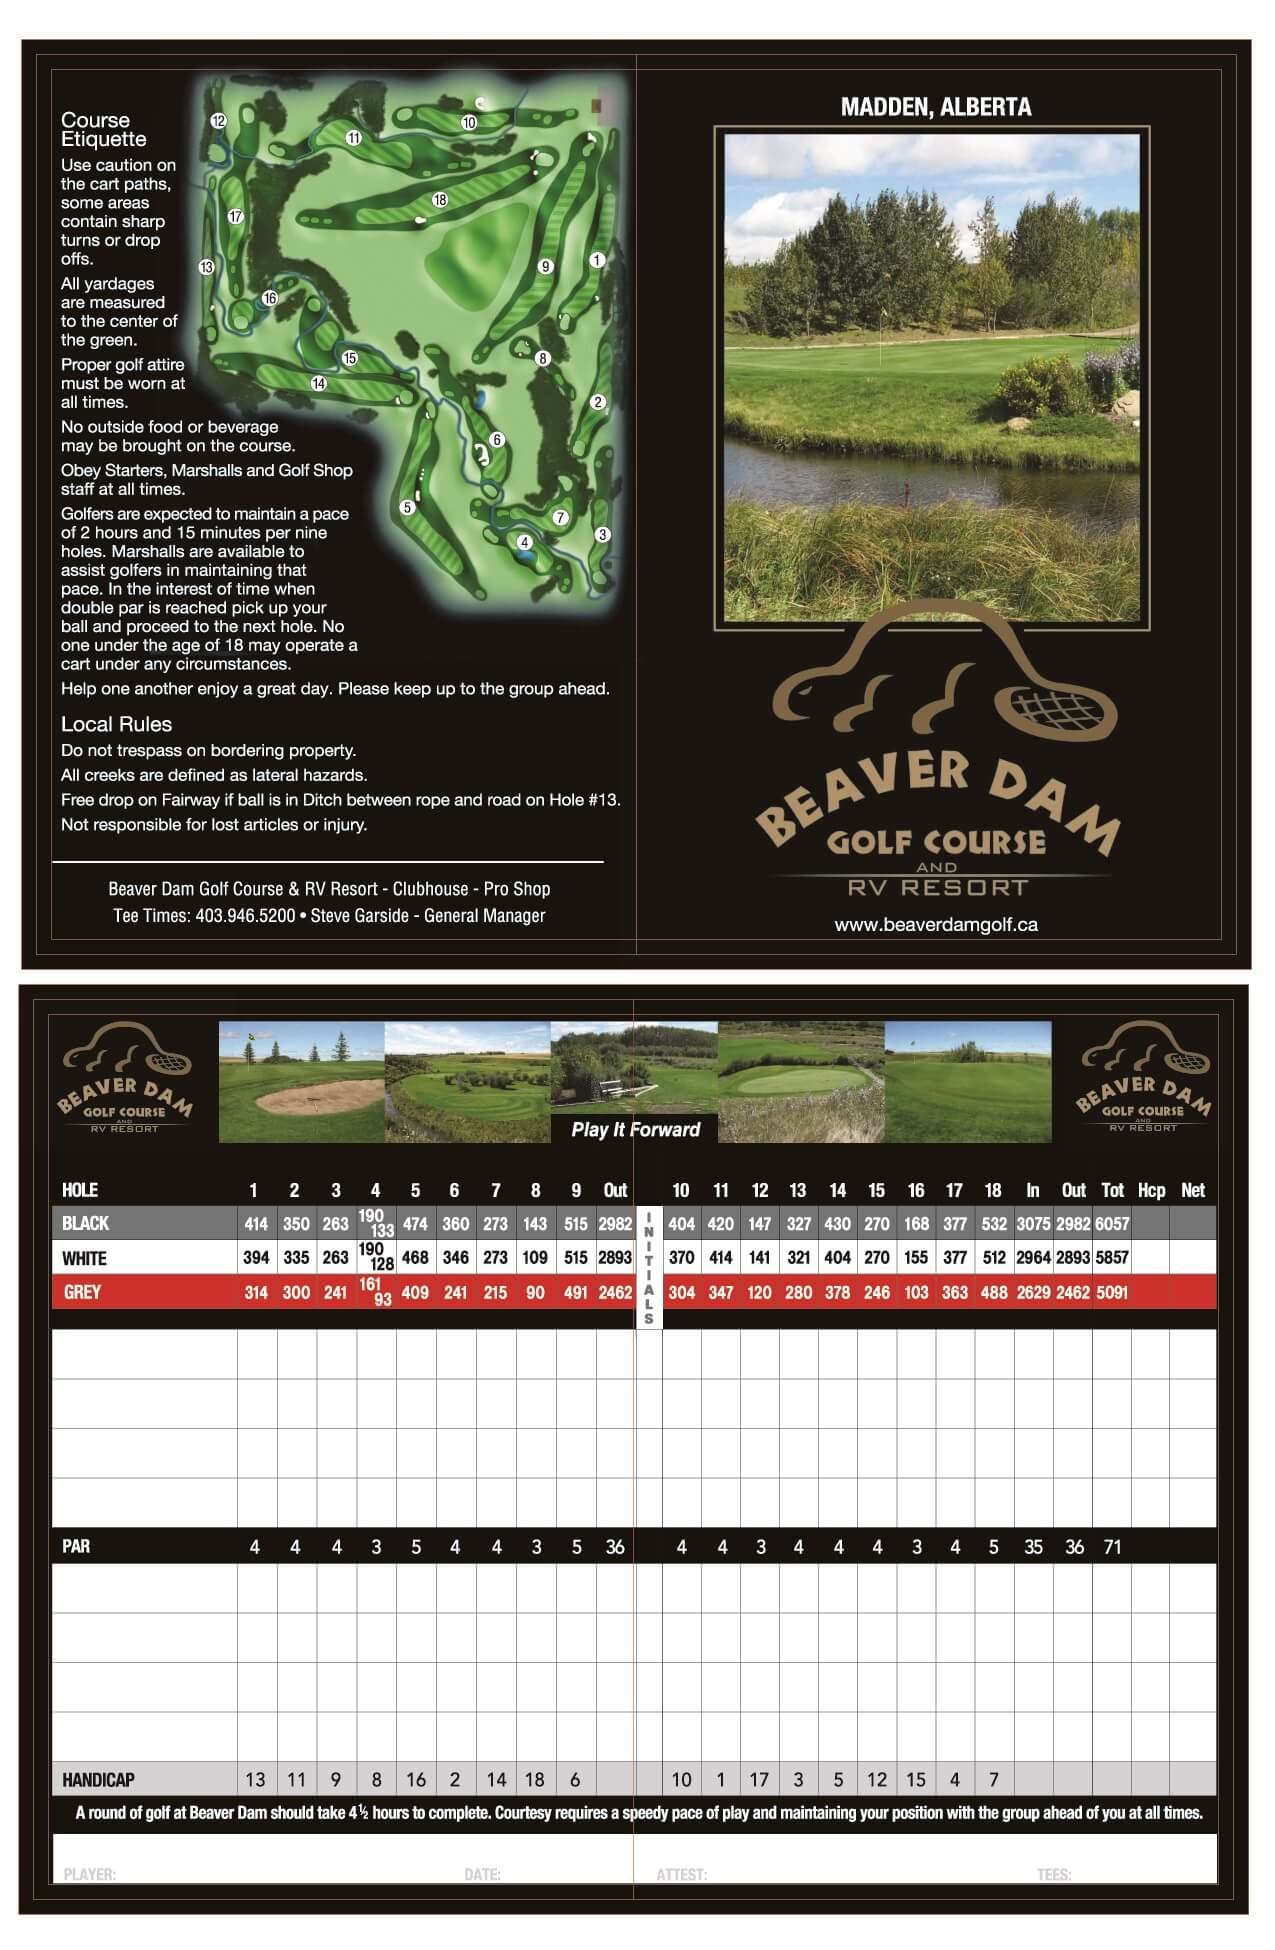 Beaver Dam Golf Course Score Card